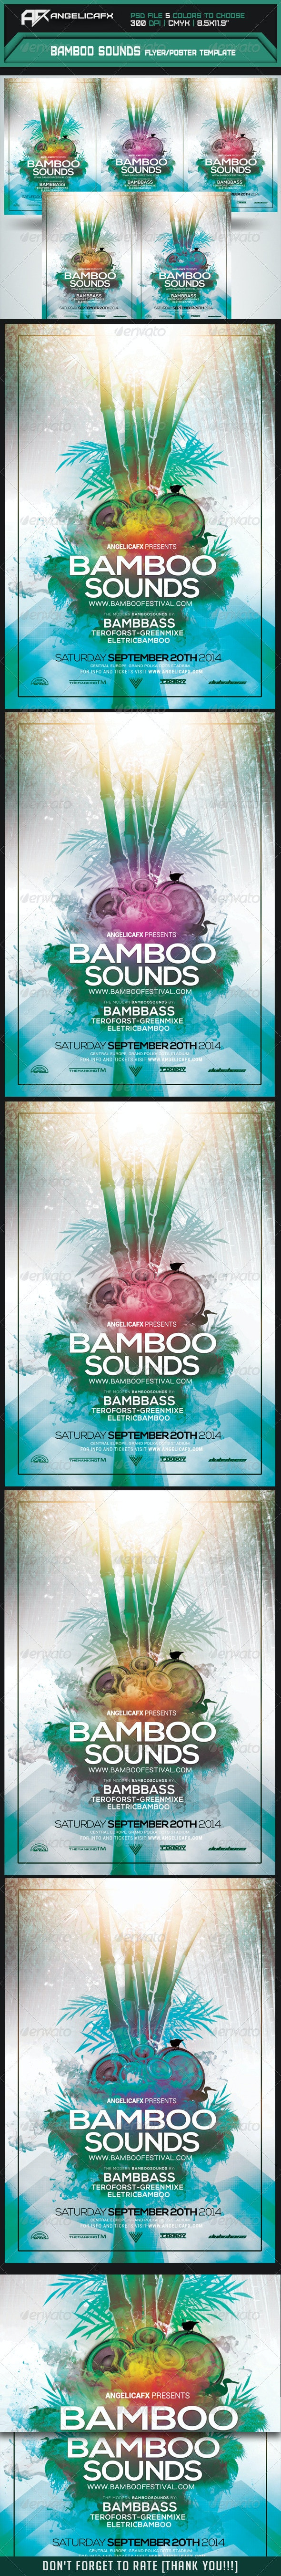 Bamboo Sounds Flyer/Poster Template - Flyers Print Templates